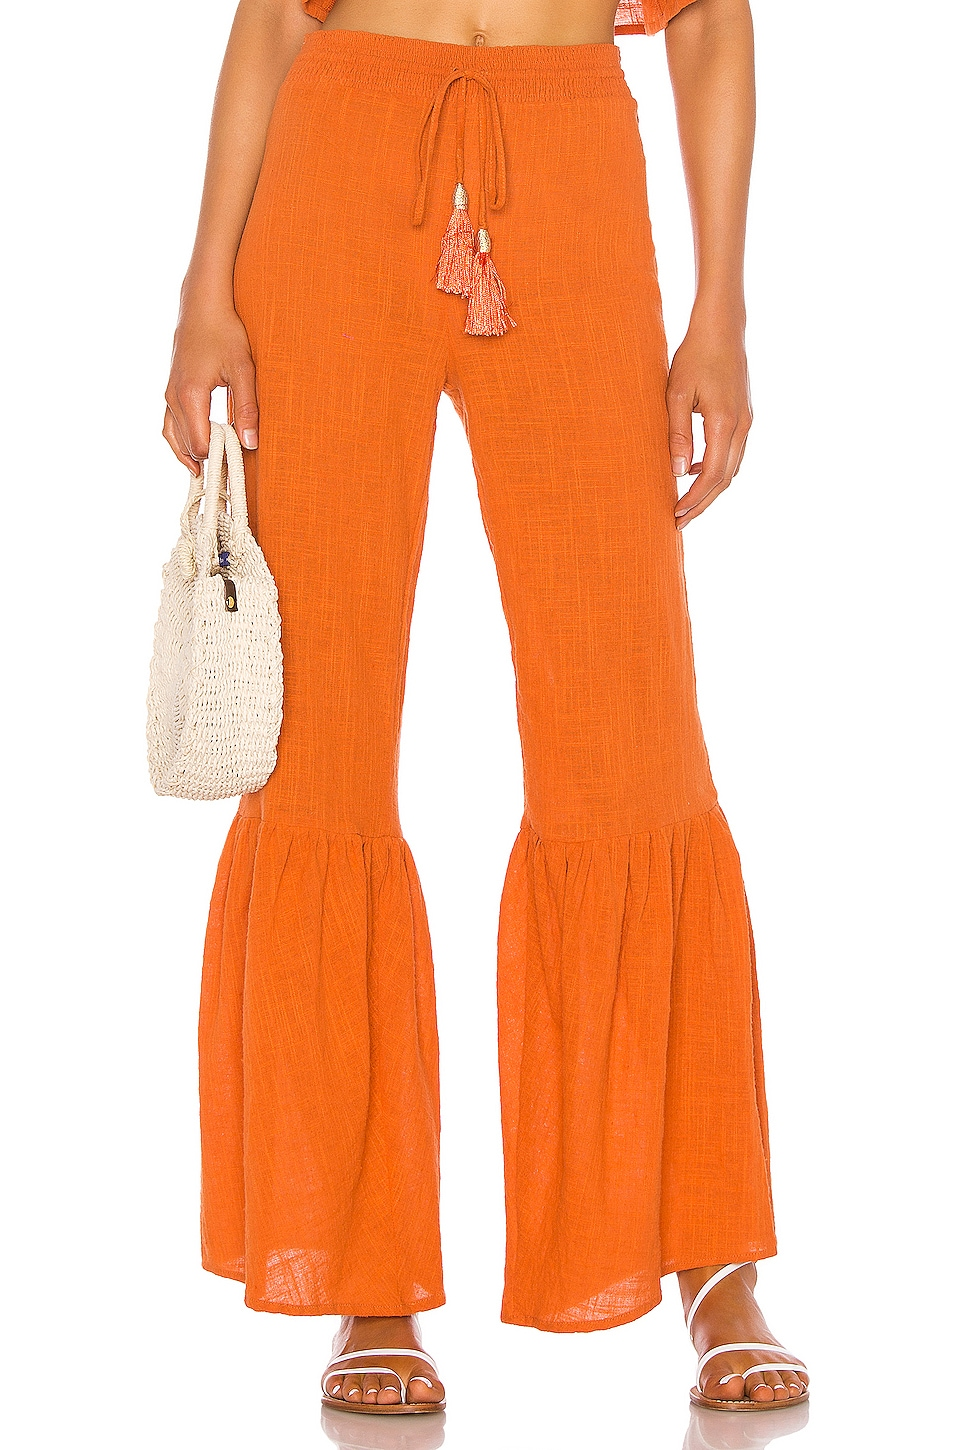 lovewave Gails Pant in Rustic Orange